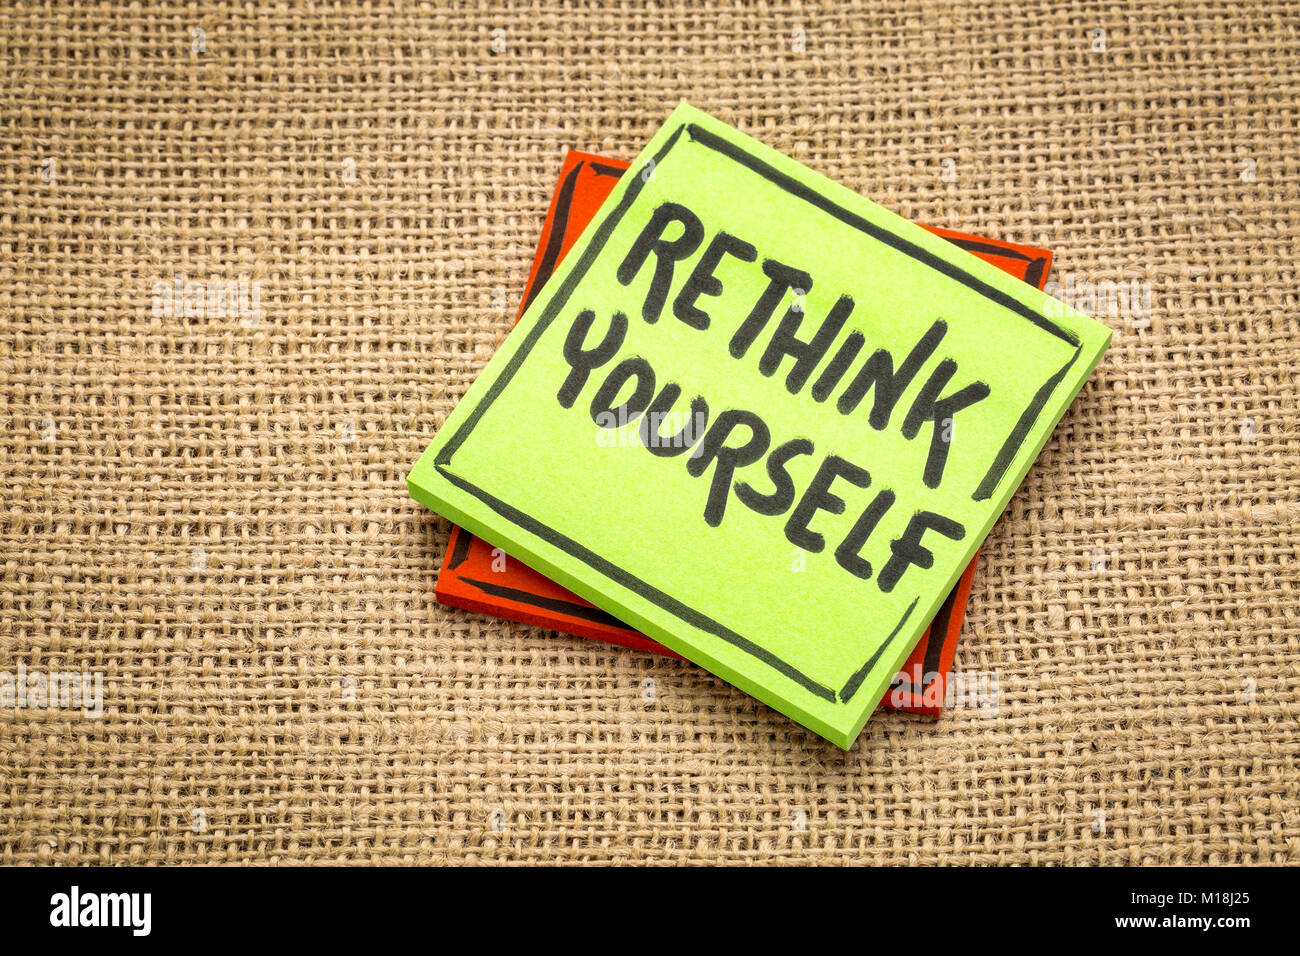 rethink yourself advice or reminder  - handwriting on a sticky note against burlap canvas - Stock Image